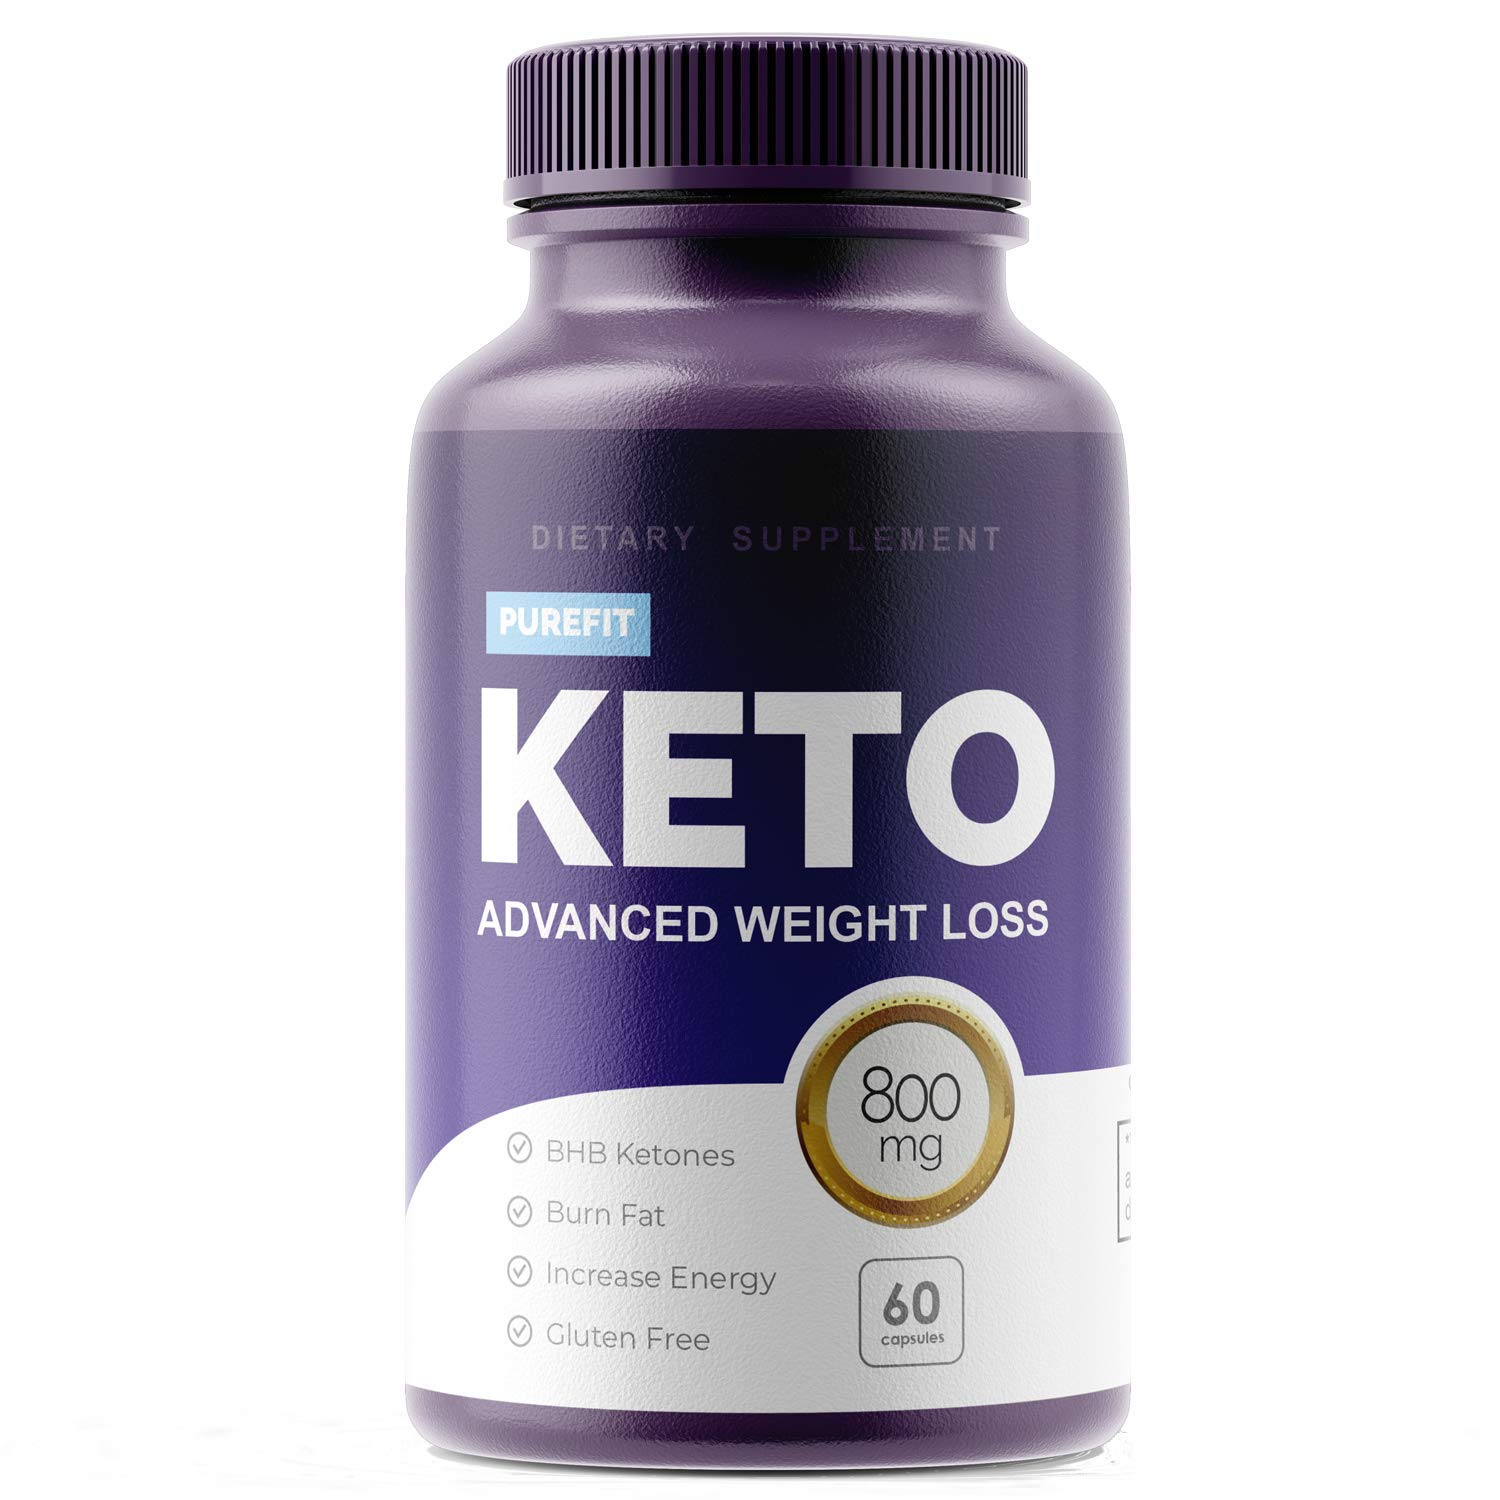 Purefit Keto Advanced Weight Loss - France - forum - action